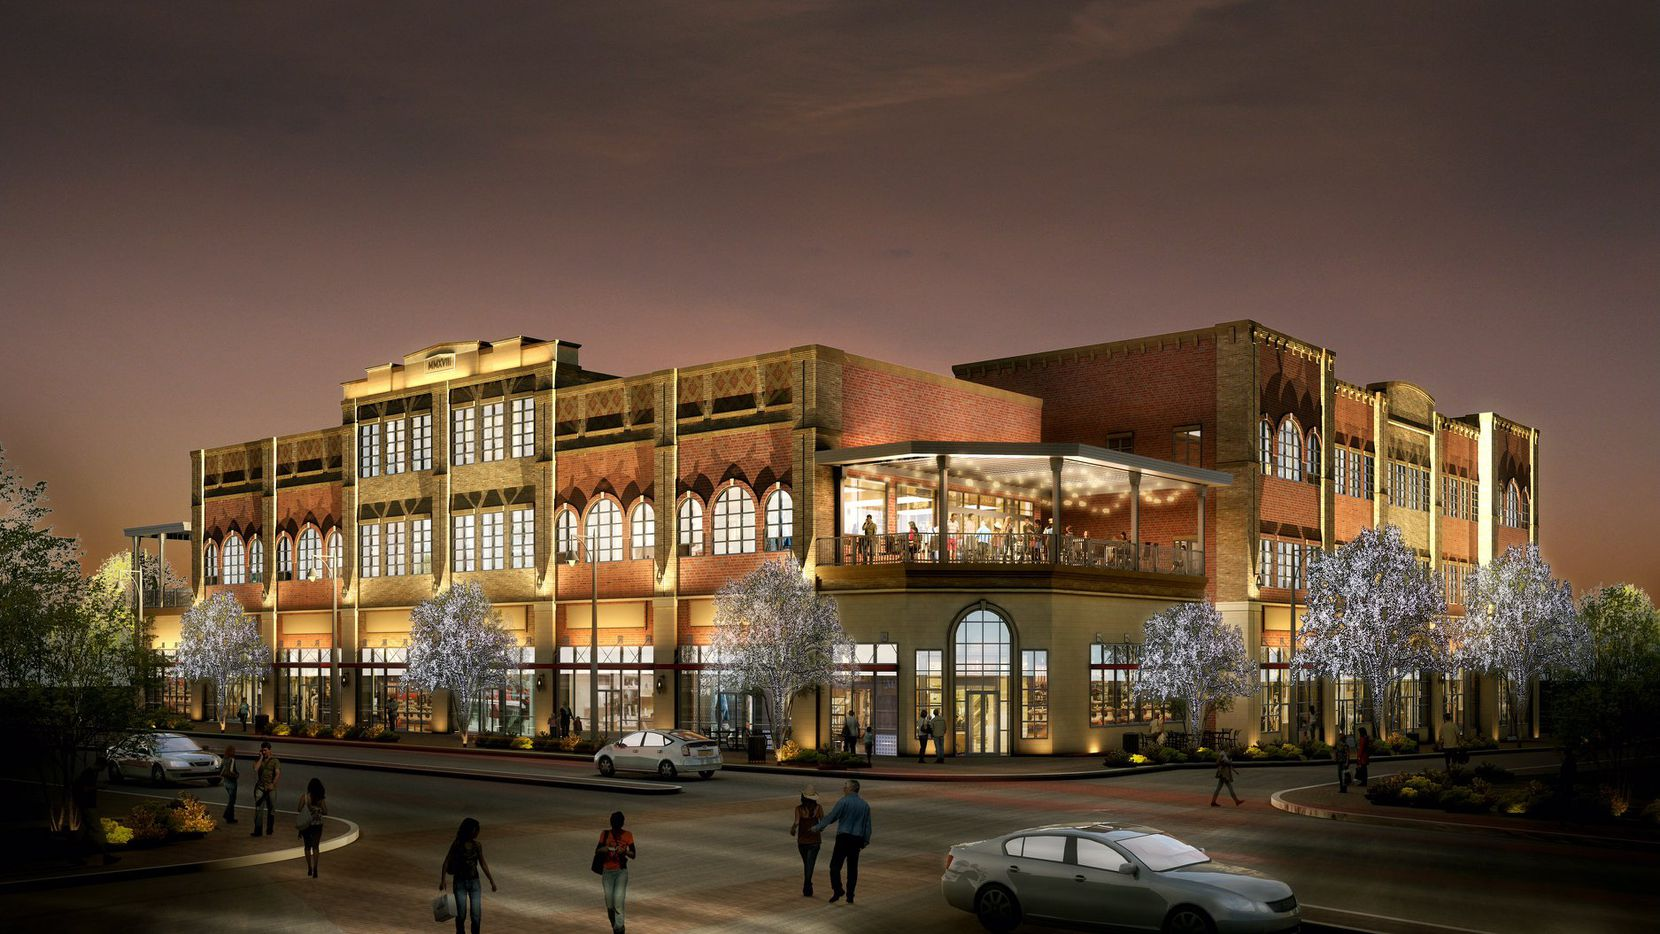 The Patios at the Rail project will include restaurant, retail and office space.